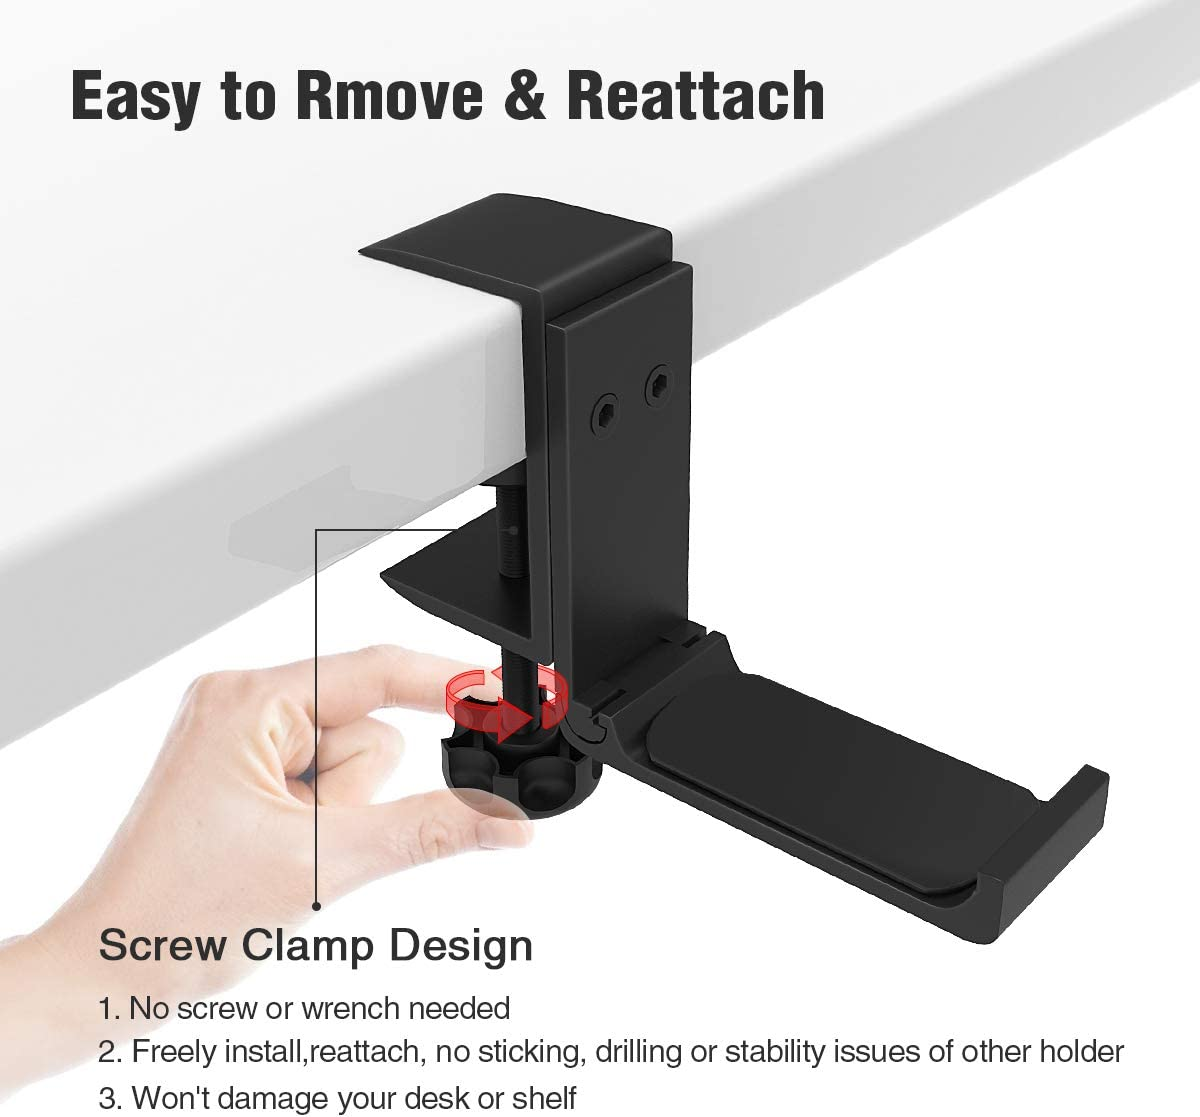 Universal Fit All Headphones Foldable Headphone Stand Hanger Holder Bracket Aluminum Headset Soundbar Stand Clamp Hook Under Desk Space Save Mount Fold Upward Not in Use Black